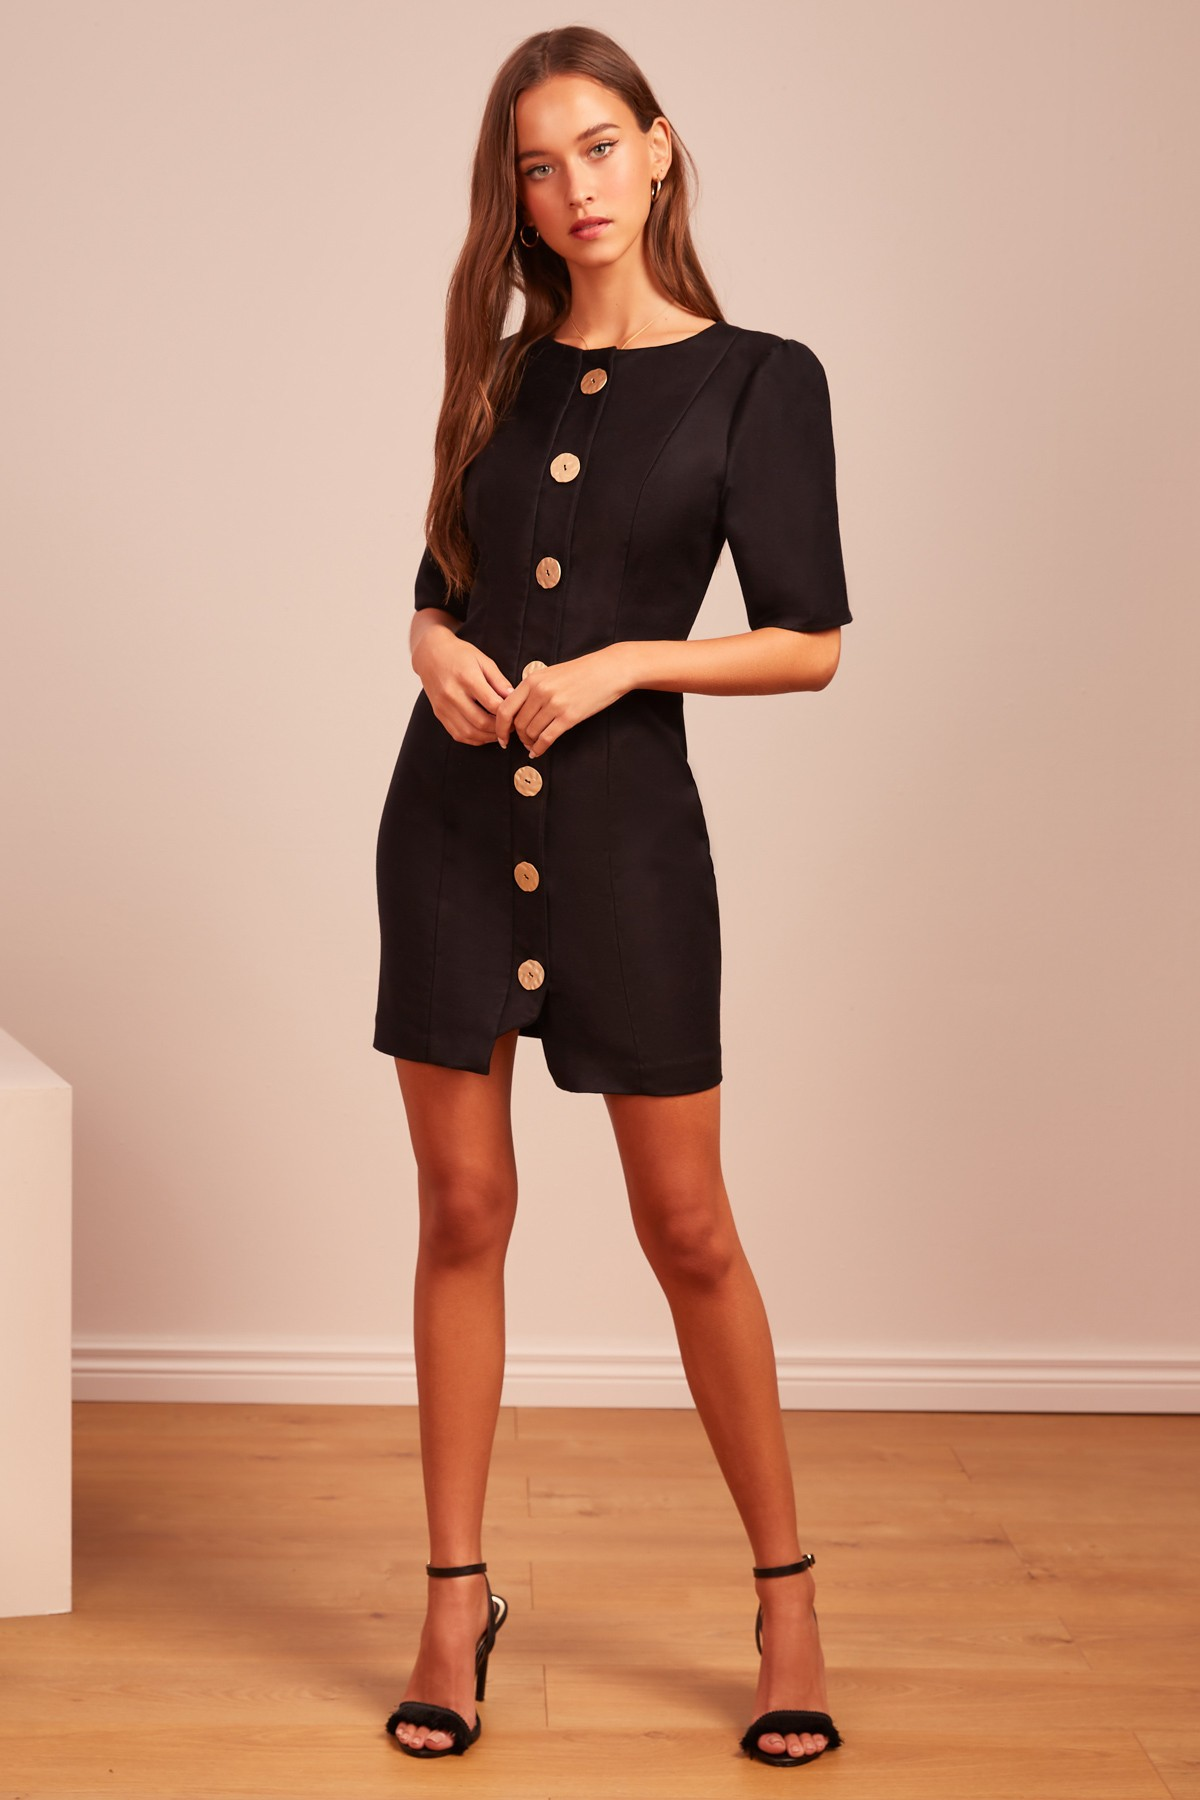 Shop Finders Keepers Pompeii Mini Dress.